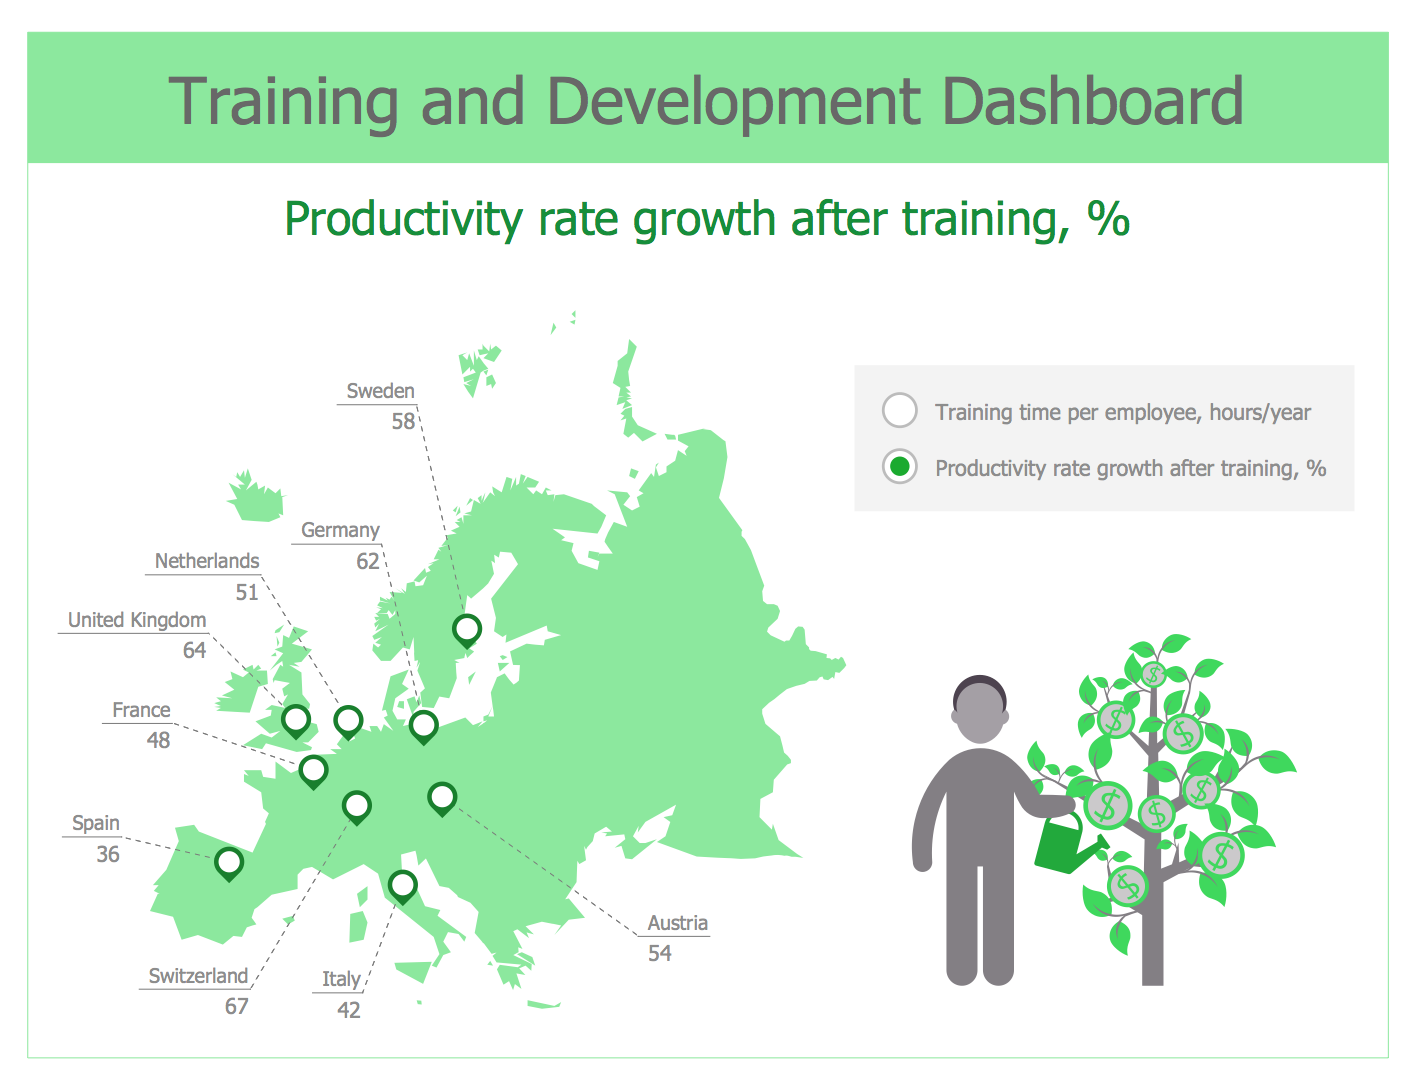 Training and Development Dashboard